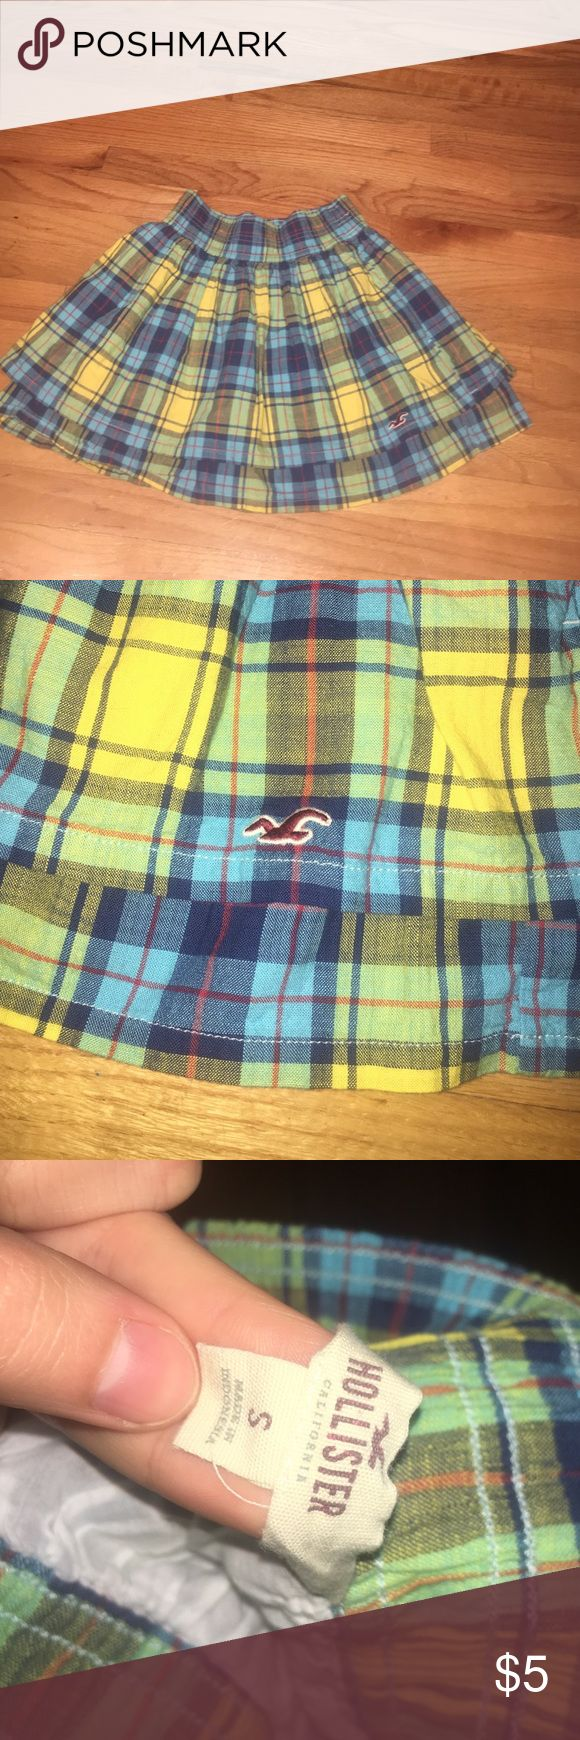 Double layered skirt Worn once, excellent condition. Hollister skirt. color yellow, blue, green and red Hollister Skirts Mini